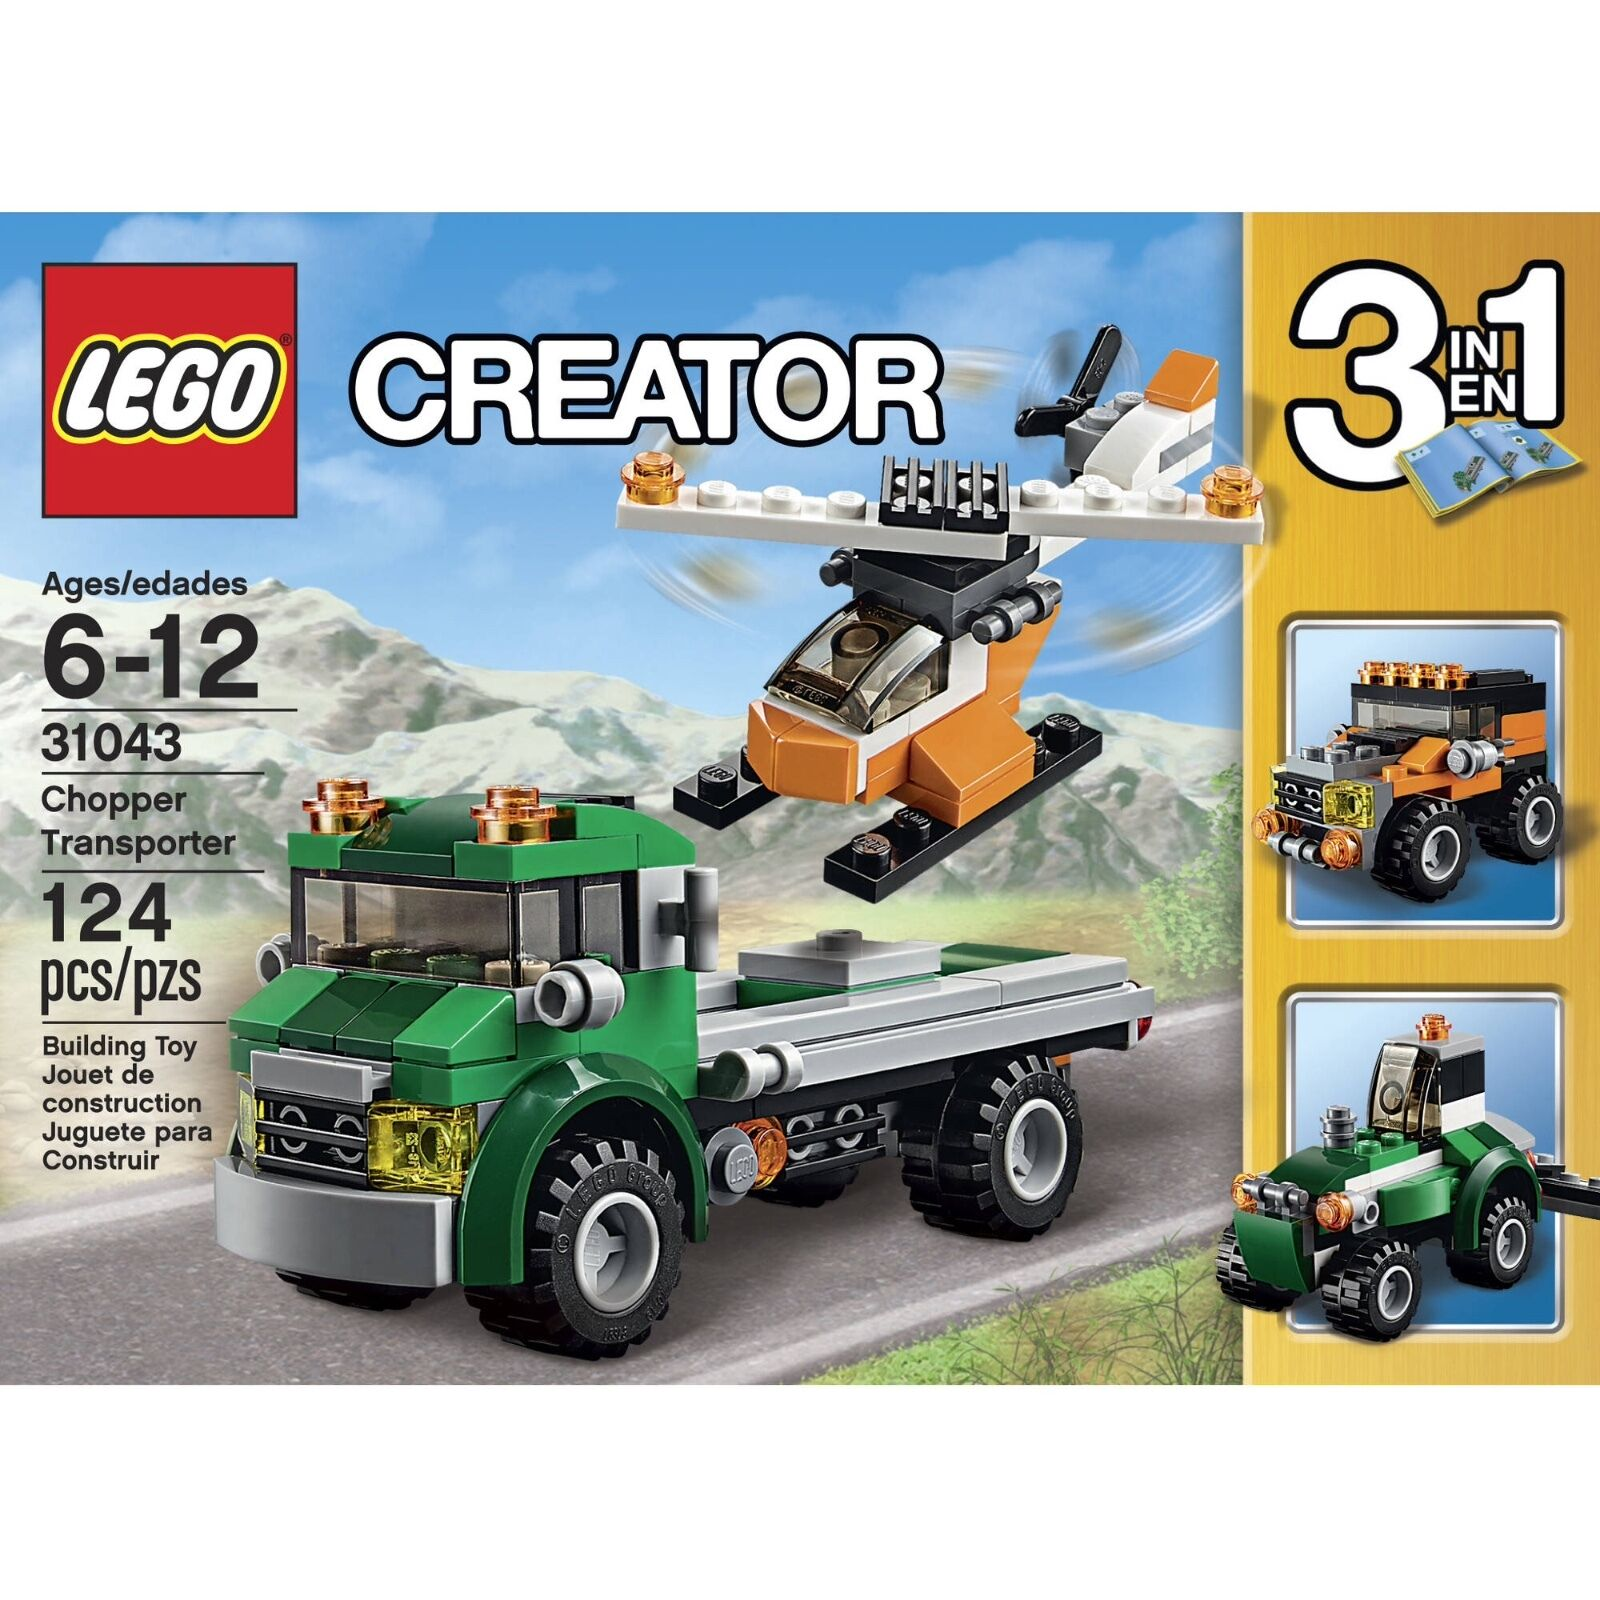 LEGO Creator (31043)  3-in-1  Chopper Transporter (Brand New & Factory Sealed)